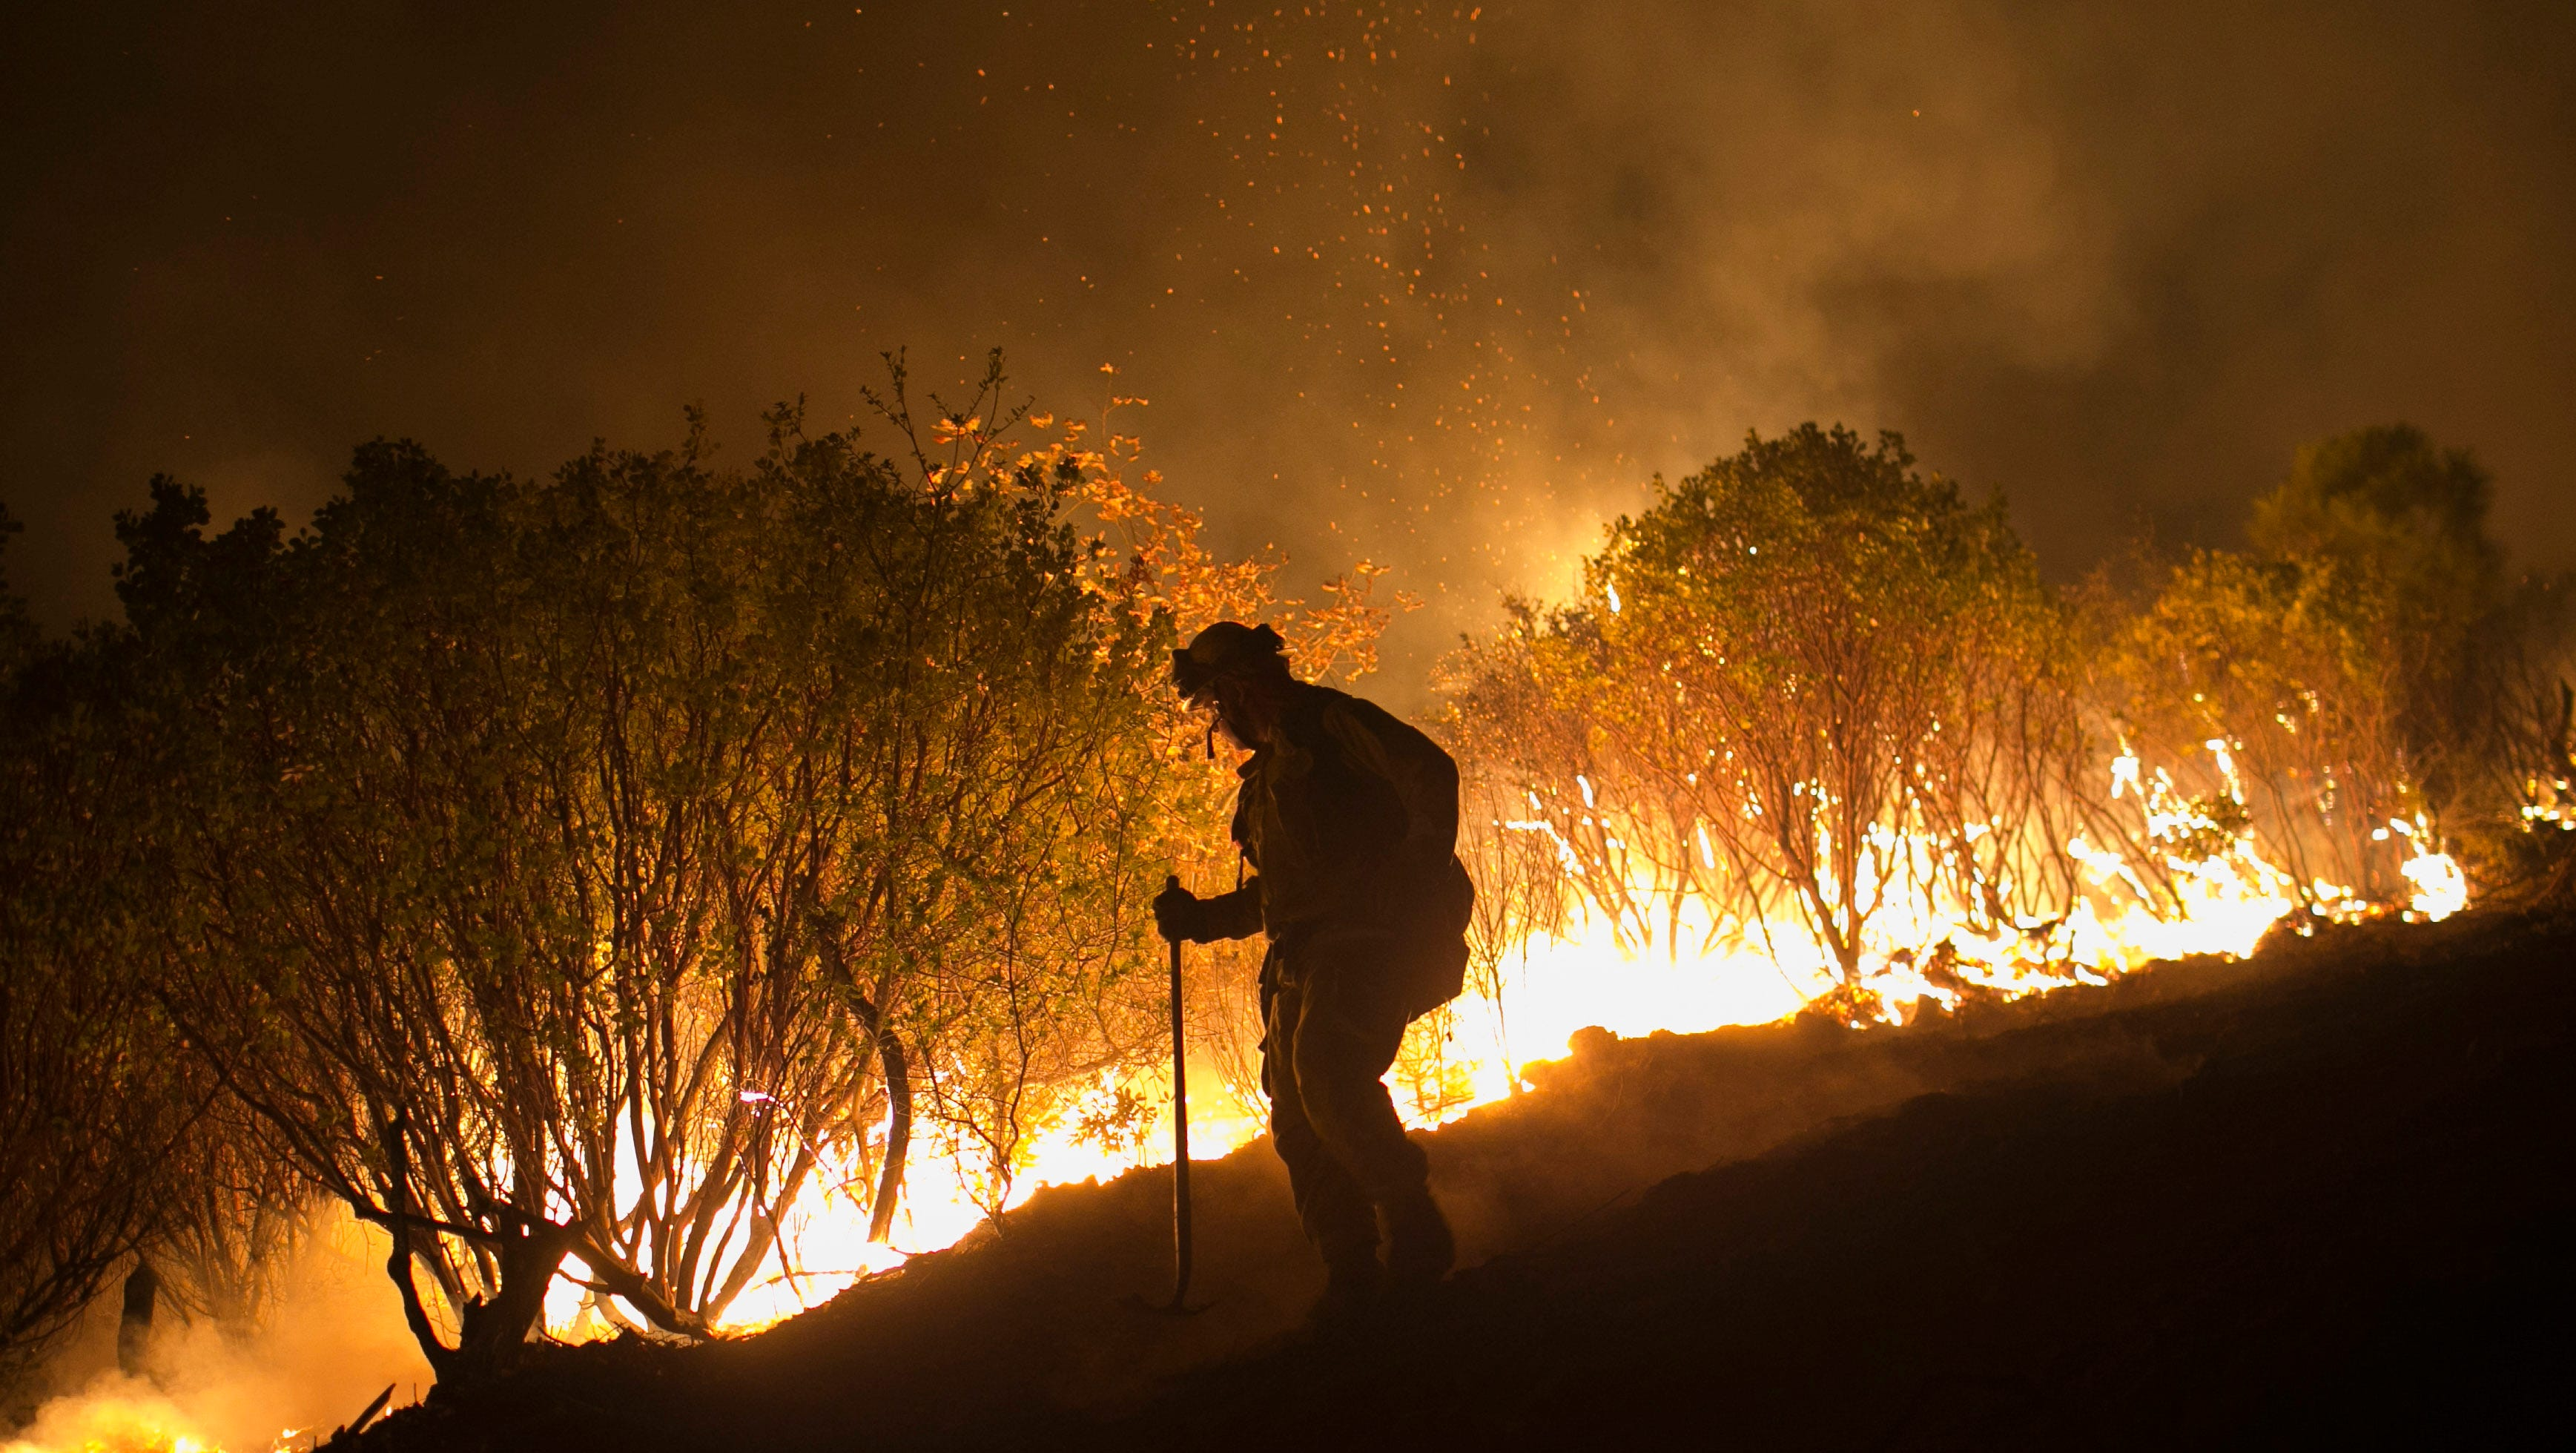 Nov. 14, 2018; Butte County, CA, USA; Firefighters hold a line in the Camp Fire with a control burn near Bloomer Hill in Butte County in California. Mandatory Credit: Thomas Hawthorne/The Arizona Republic via USA TODAY NETWORK ORIG FILE ID: 20181115_ajw_usa_006.jpg